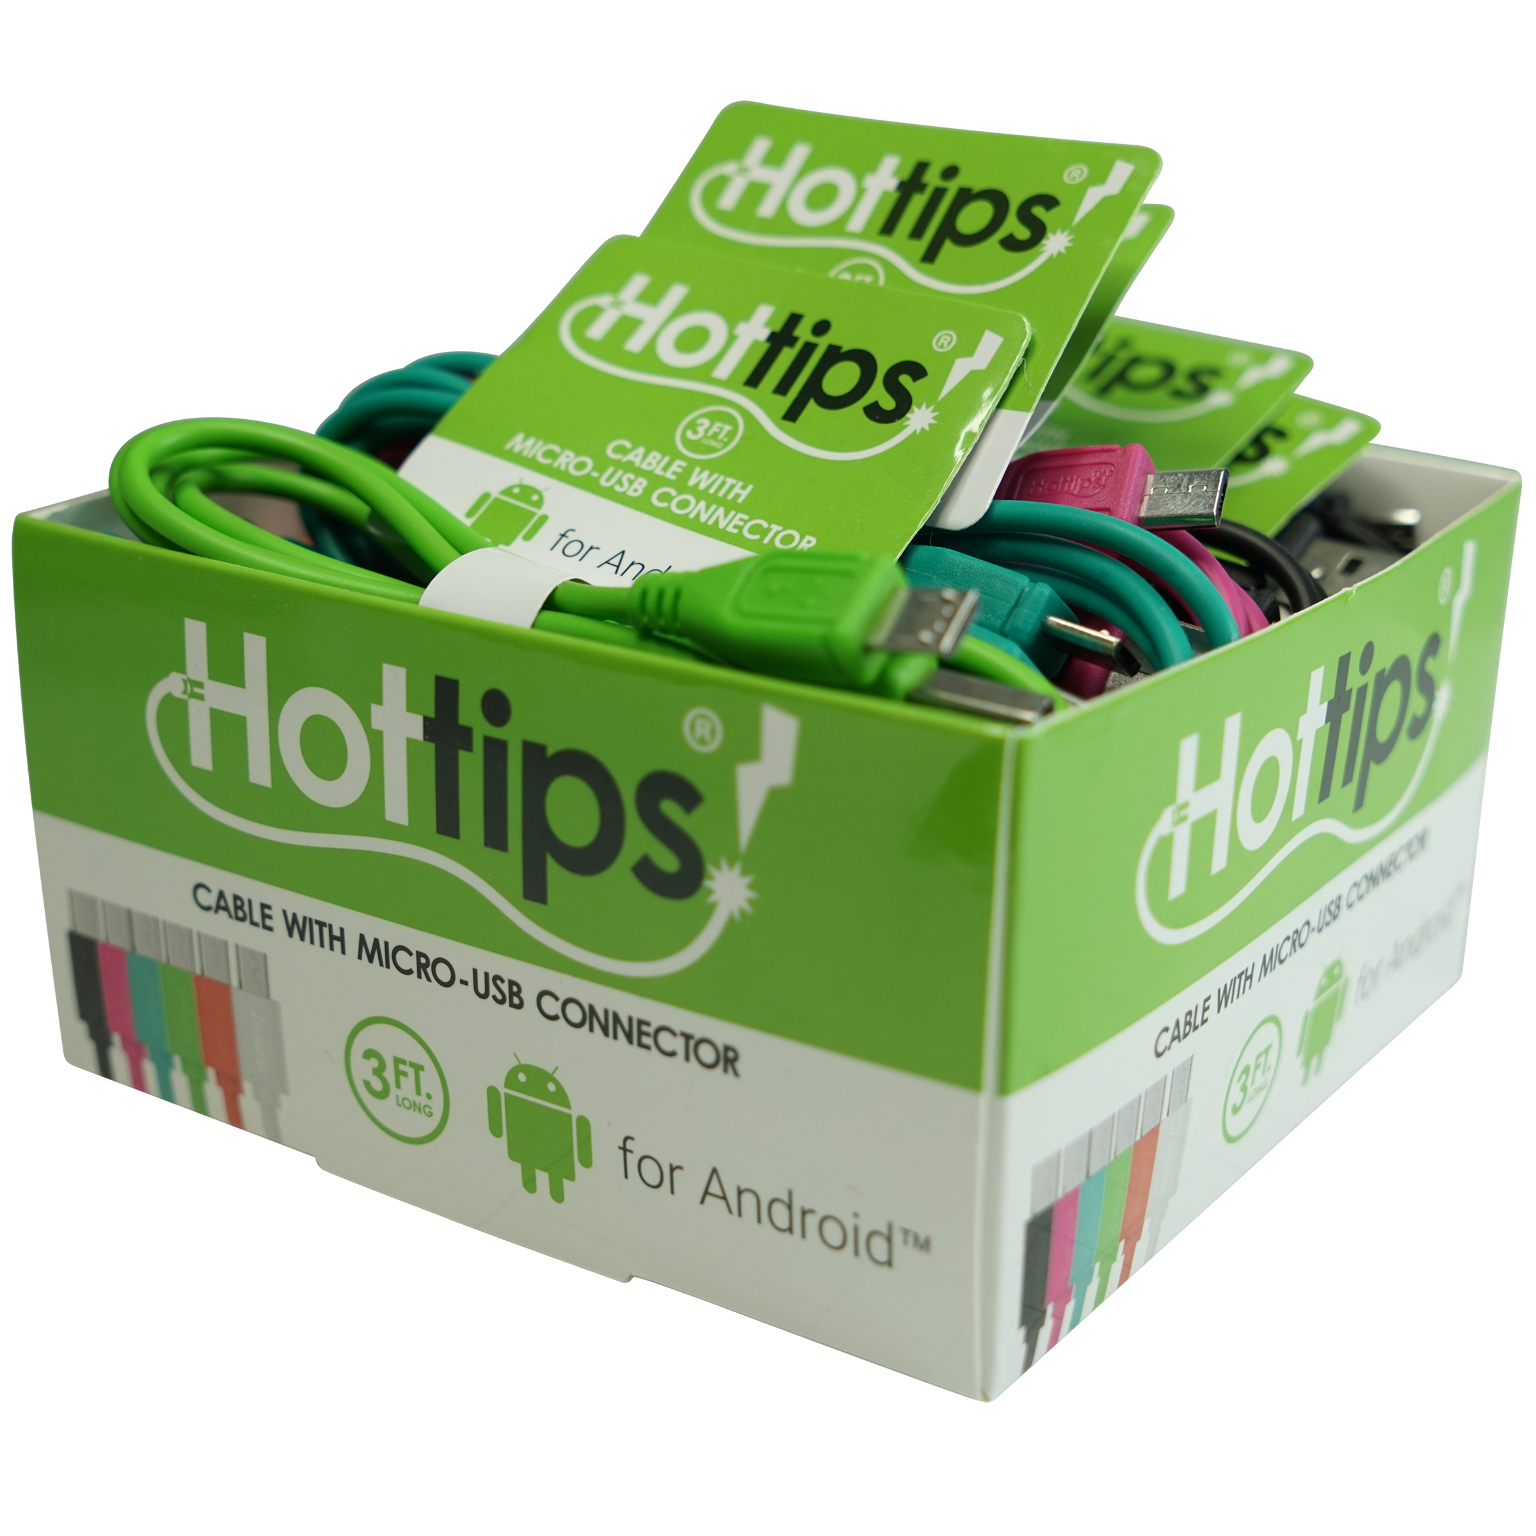 Hottips Tray Pack Micro USB Cable Assorted- 24-count [1876730]